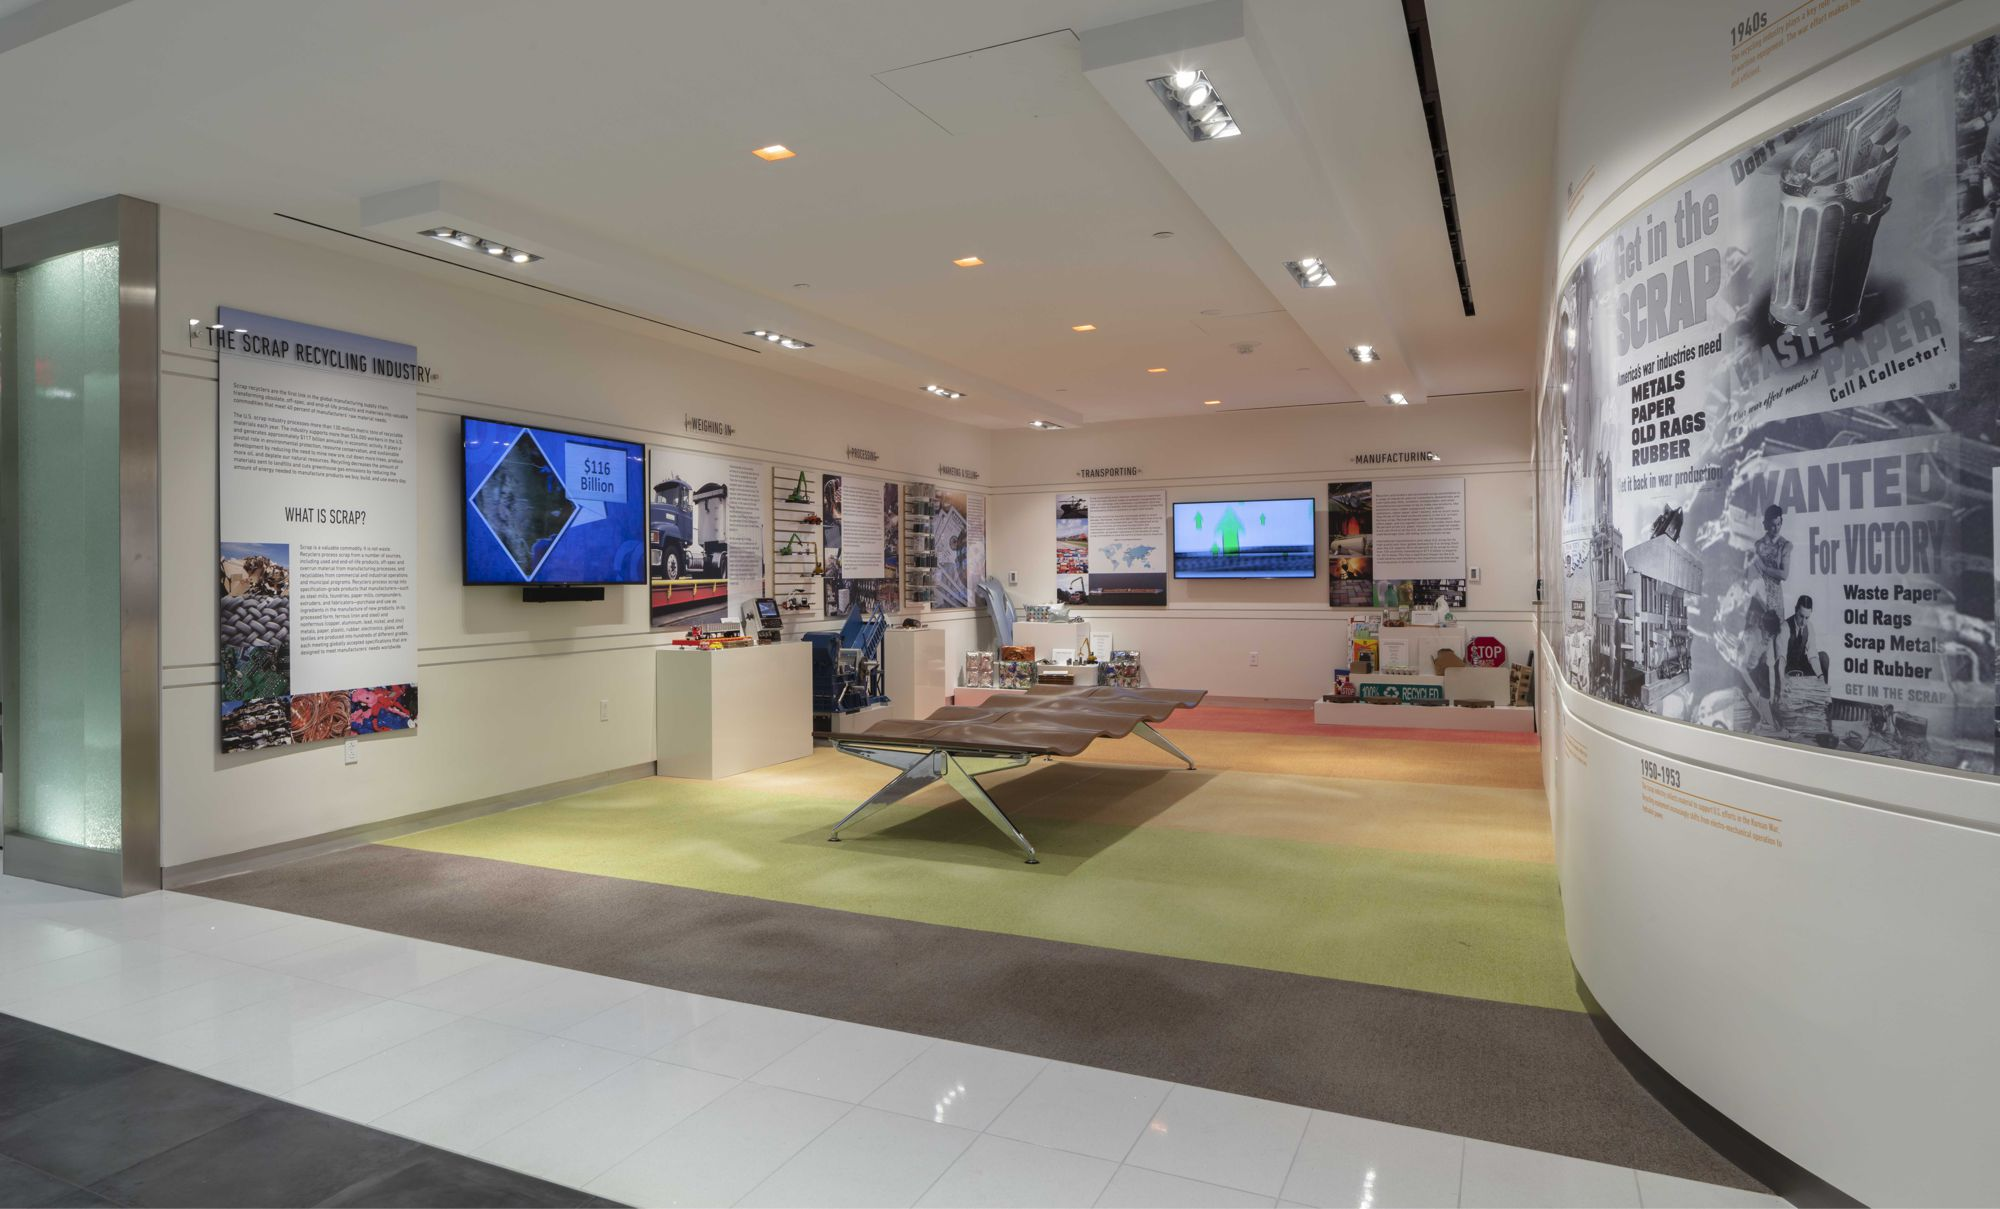 The plan welcomes visitors with a museum-style Education Center, rather than a traditional reception space.  Exhibits including models and video can be explored, as well as a custom historic timeline showing the history of recycling.